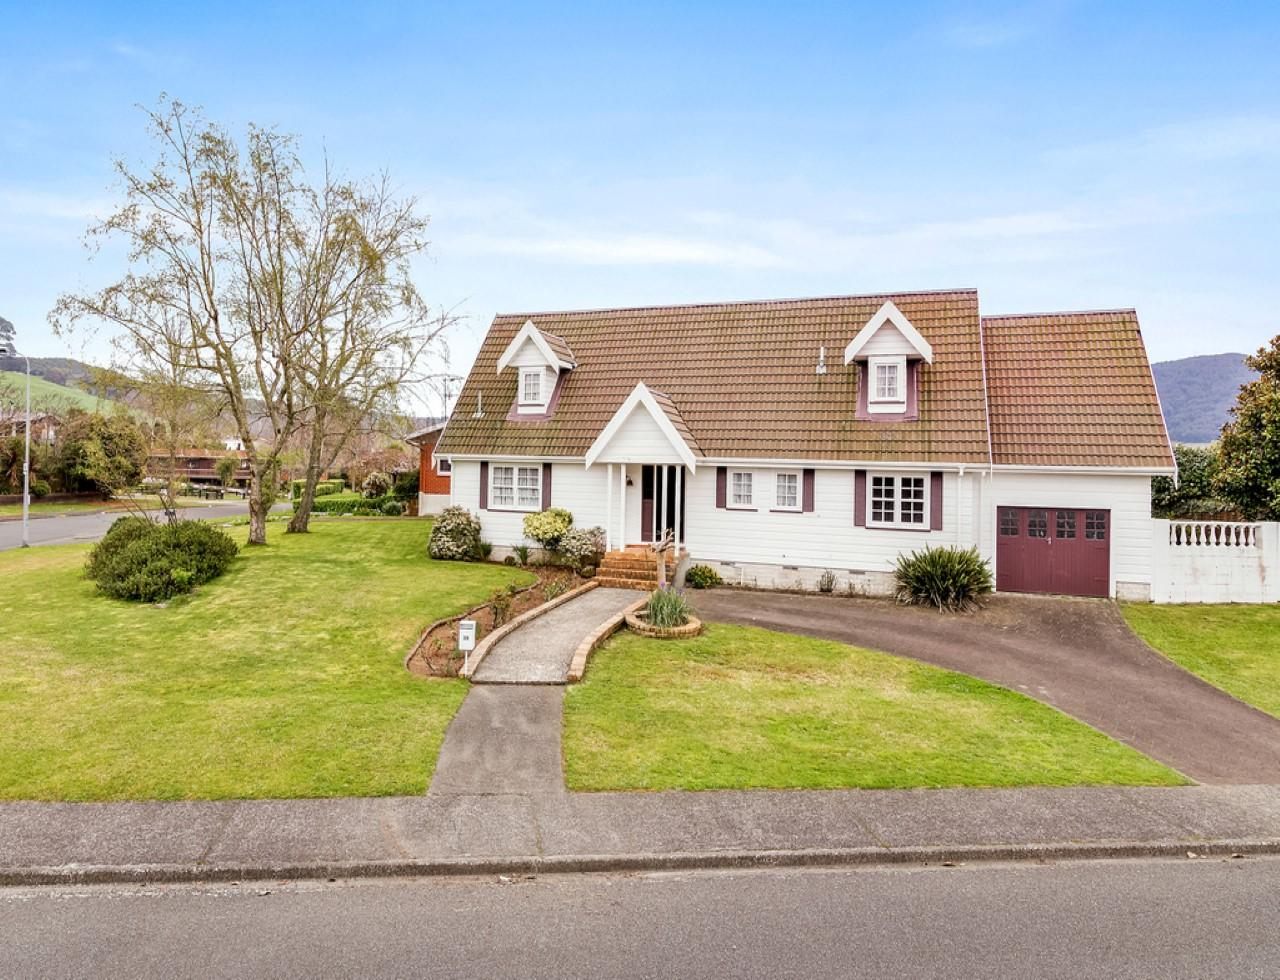 Best Buy Private Auction >> House For Sale in Sunnybrook, Rotorua, Bay Of Plenty | For Bay Of Plenty Real Estate, Choose Eves